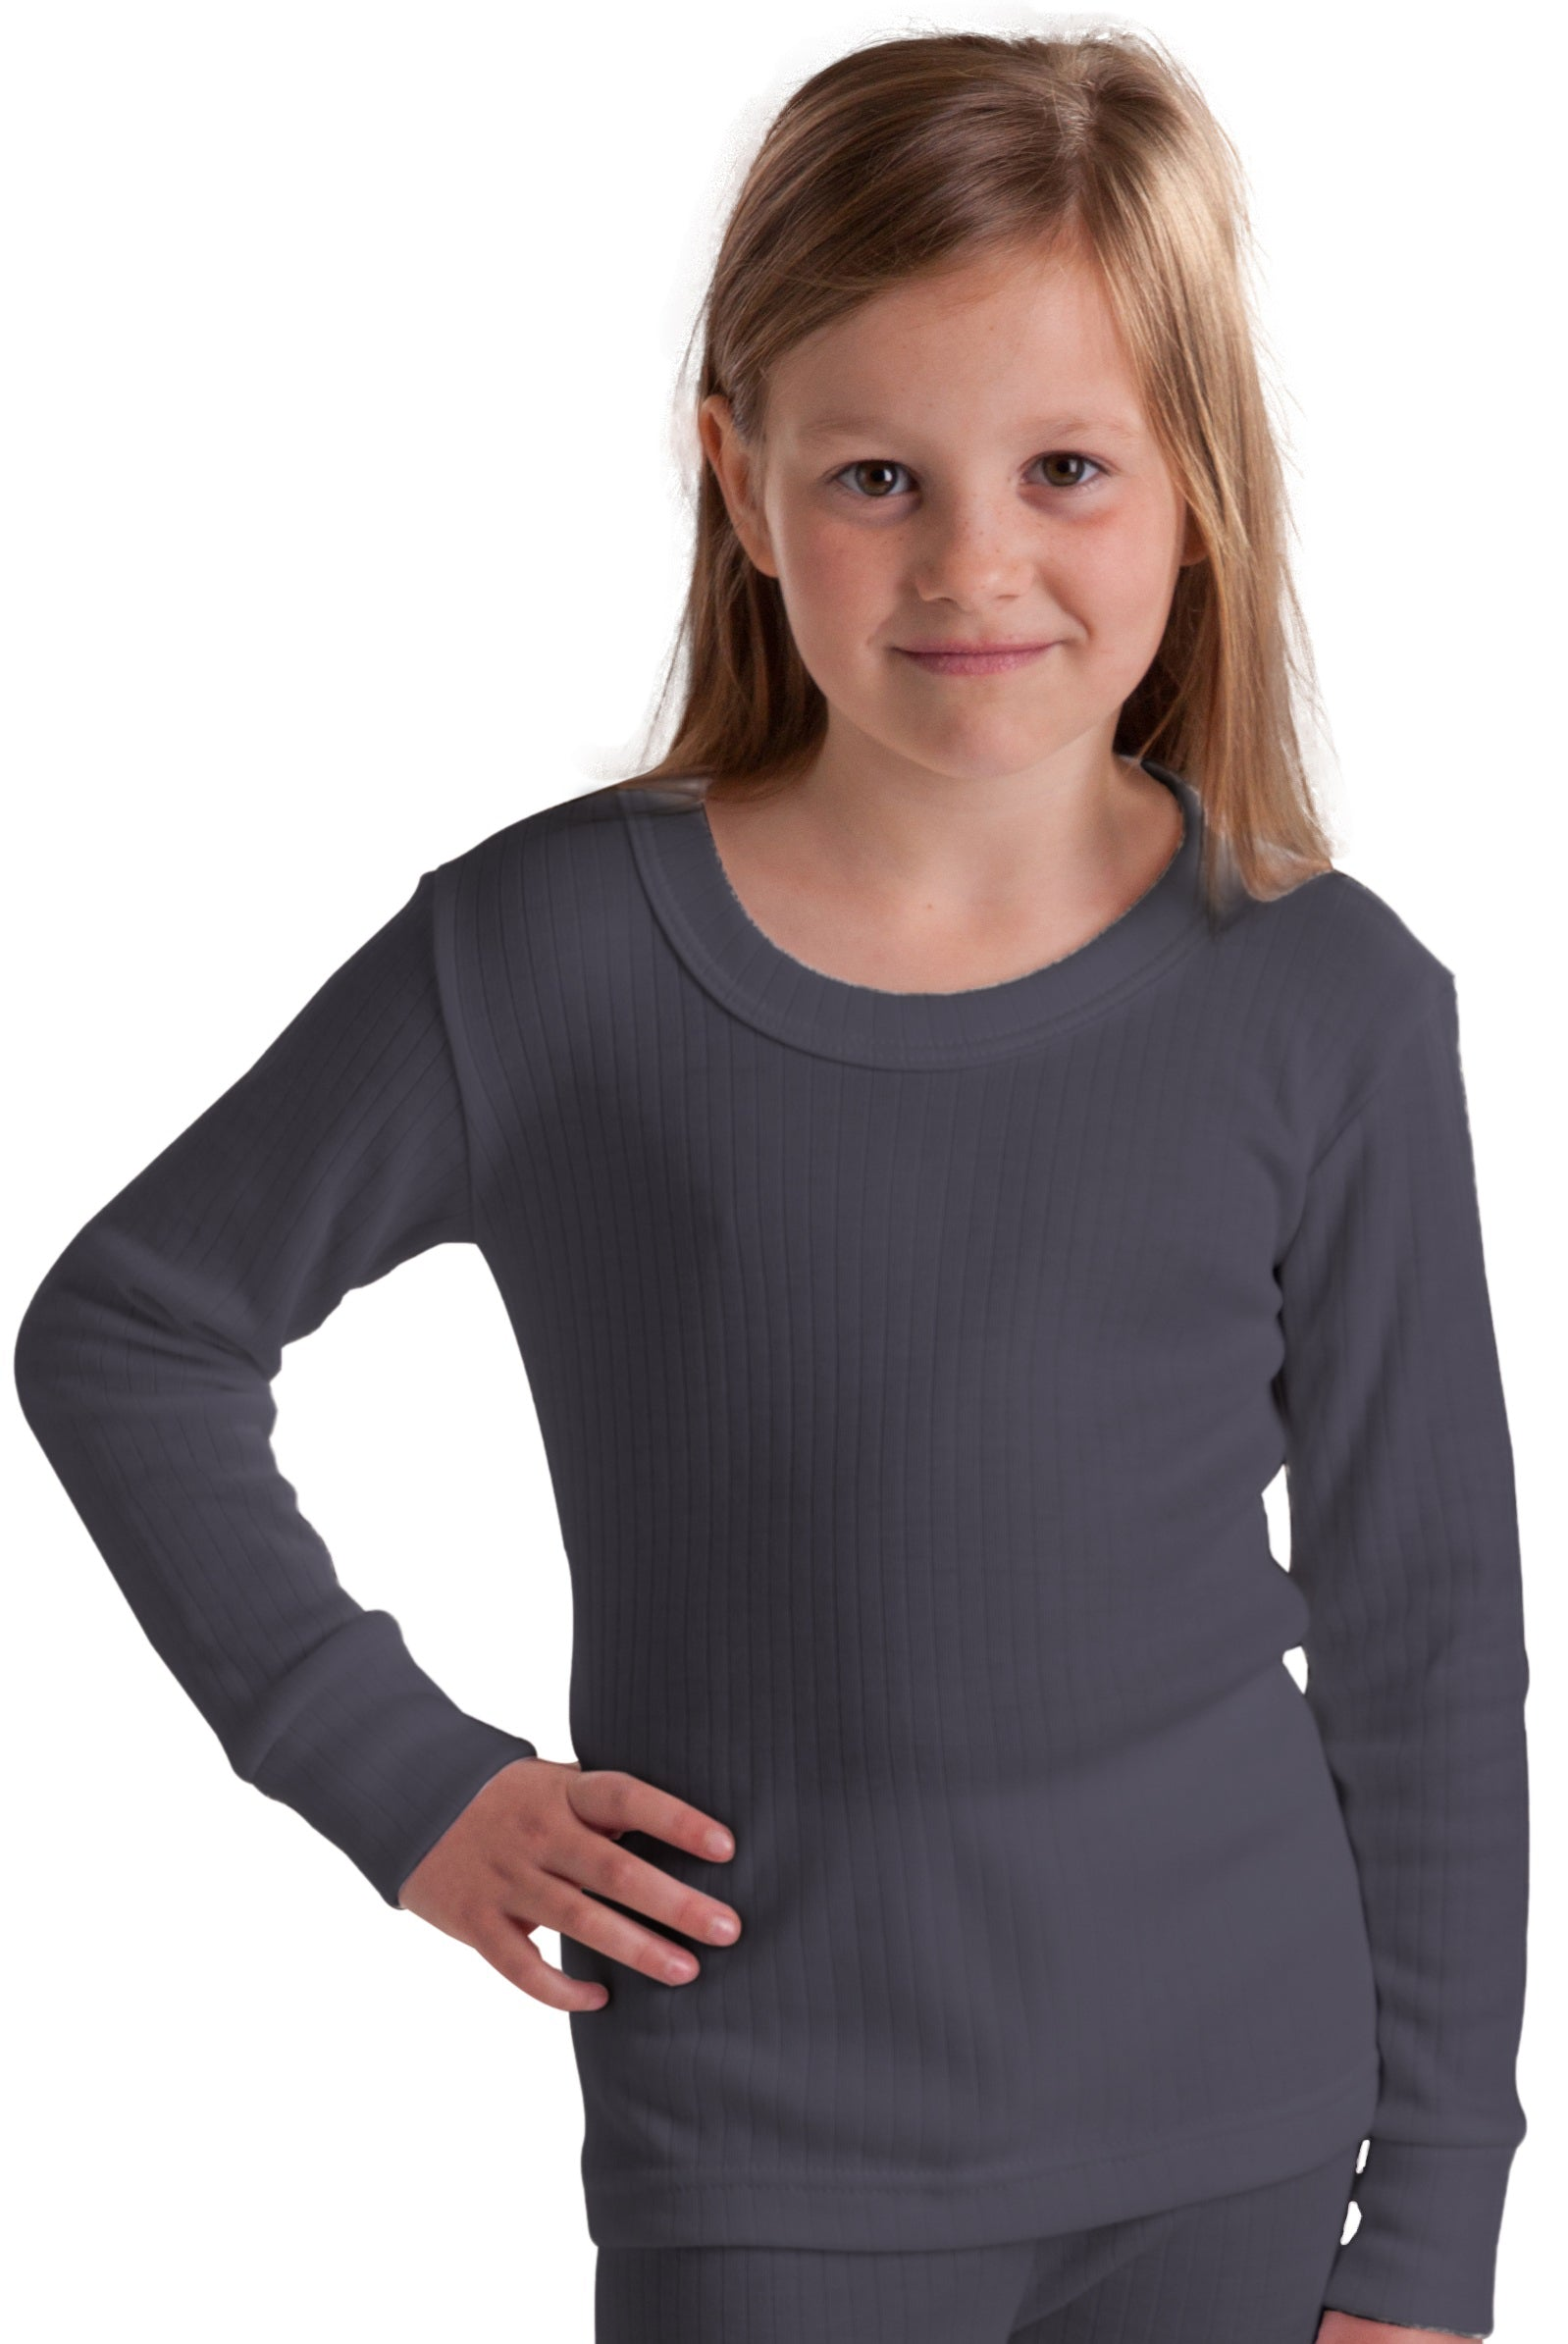 Octave® Girls Thermal Underwear Long-Sleeve Top